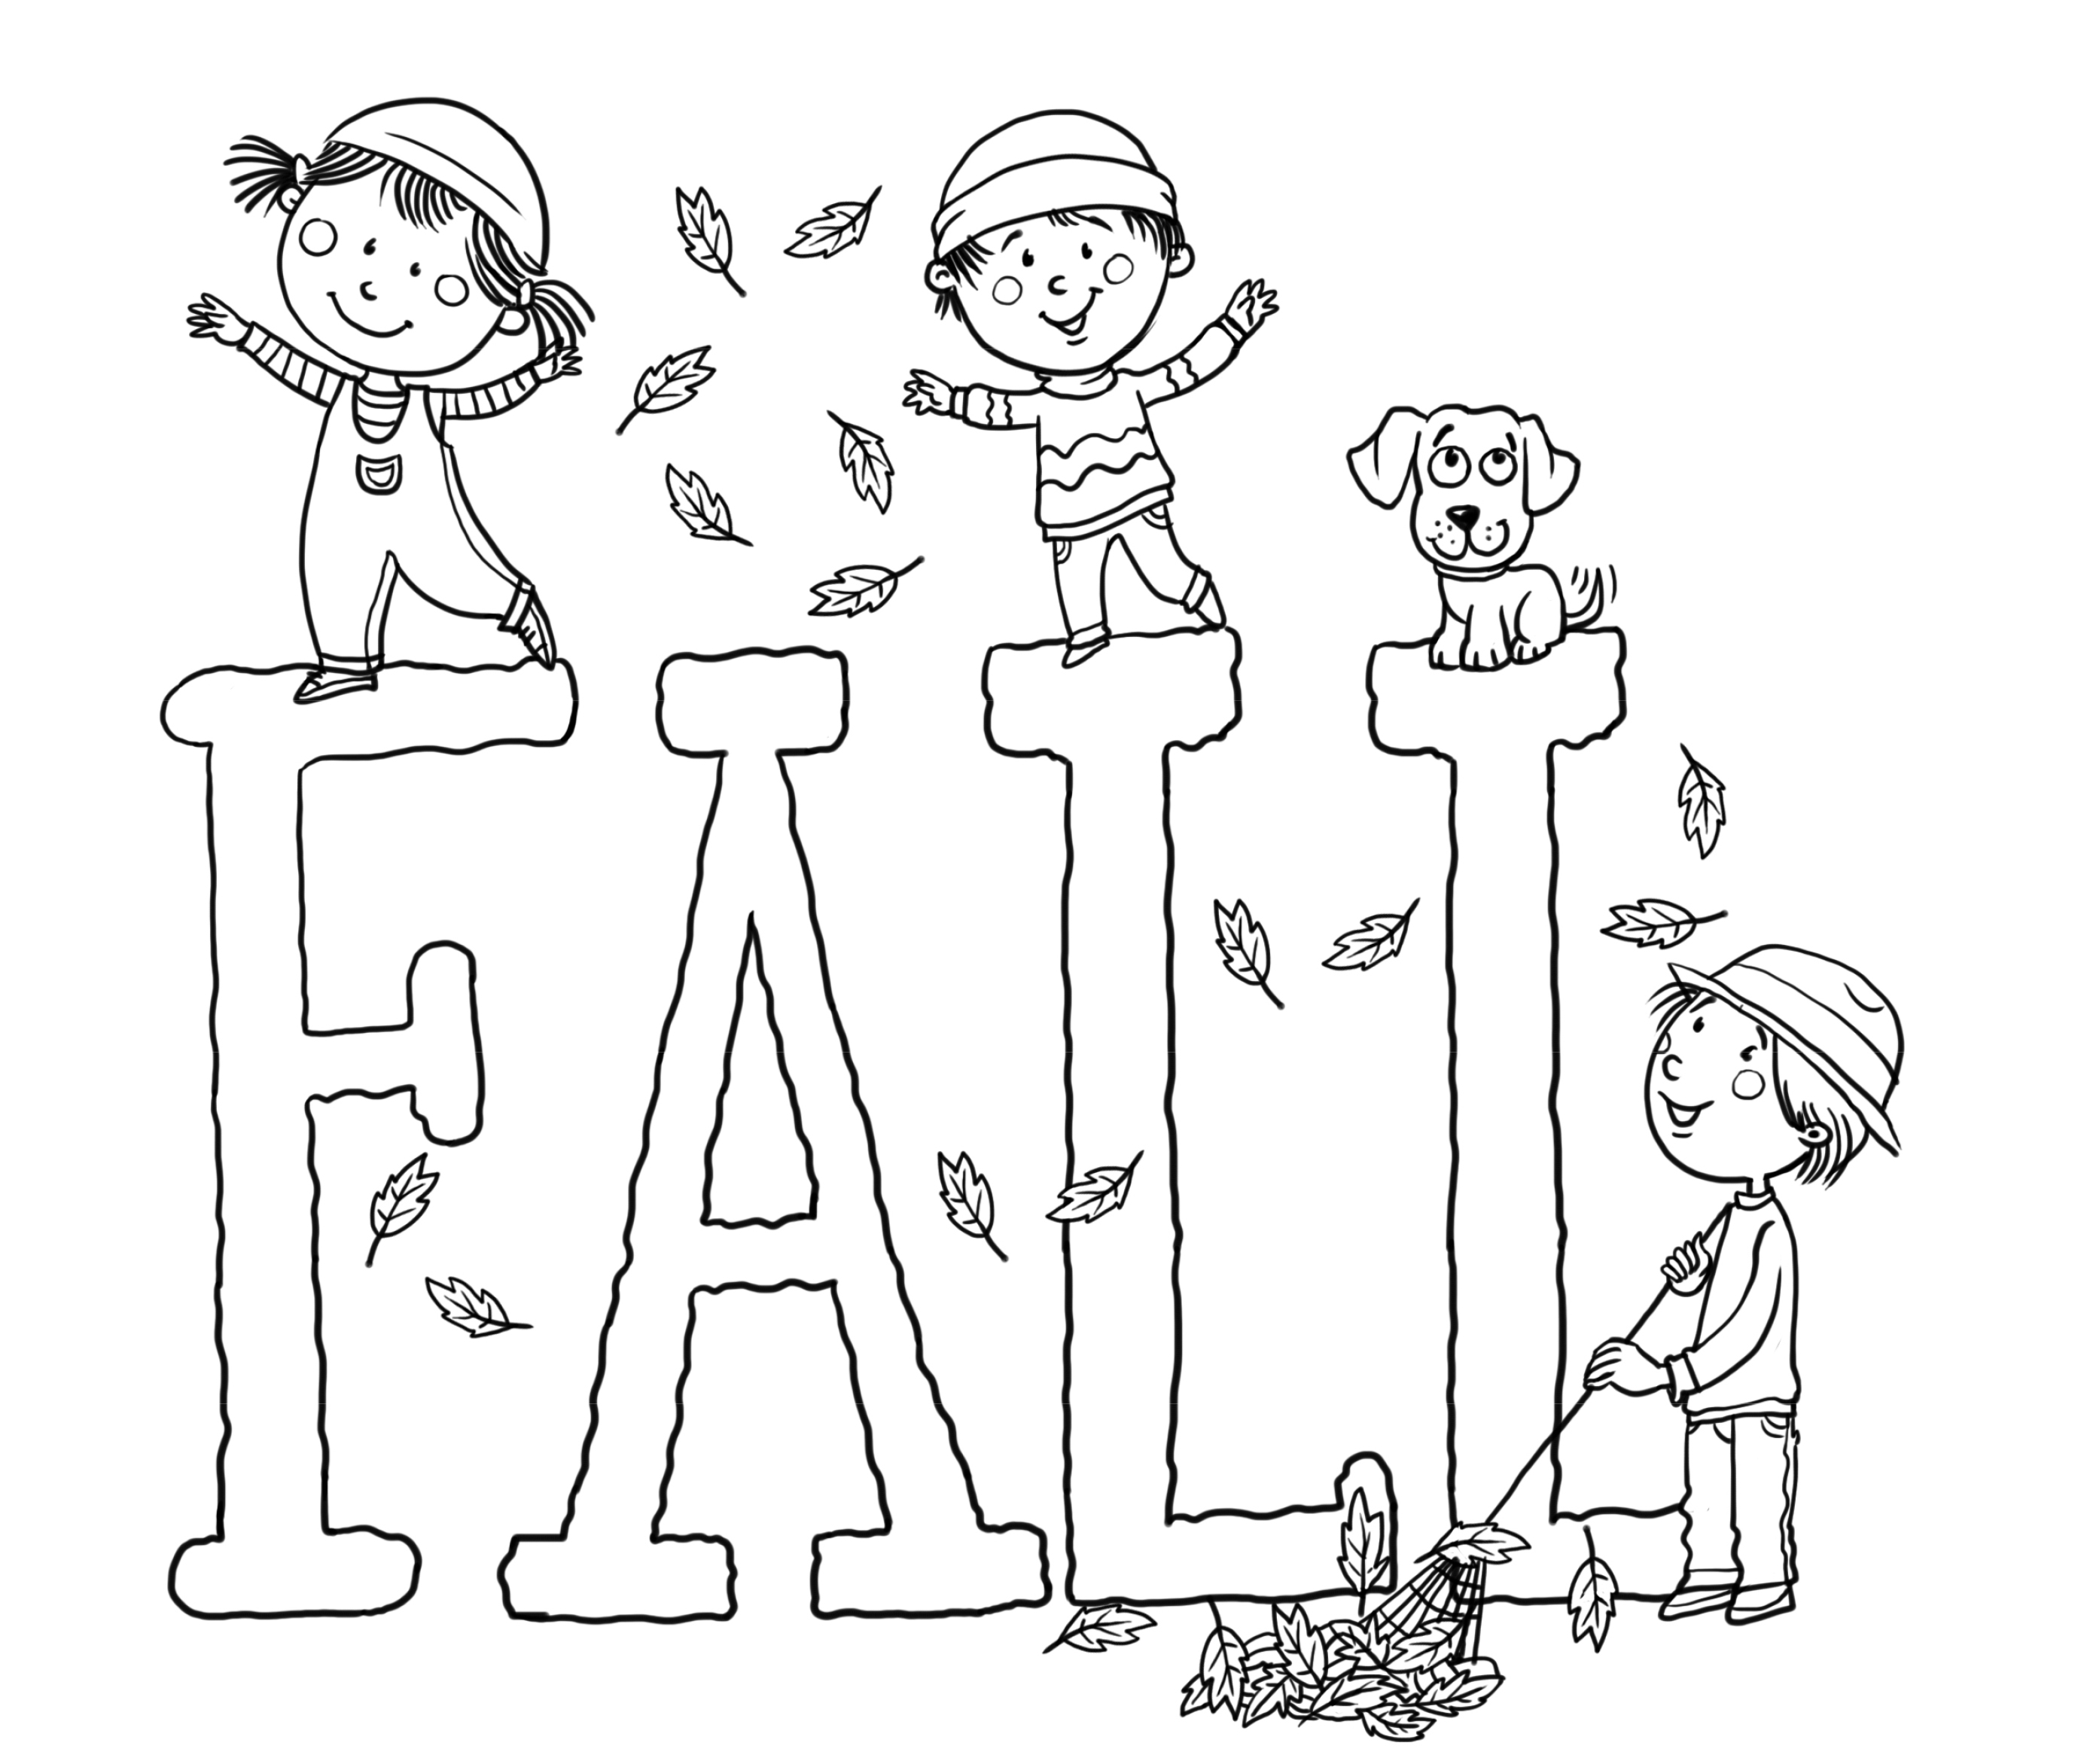 color the picture and the word fall in this fun fall coloring page for kids free fall coloring printables - Free Fall Coloring Pages Print